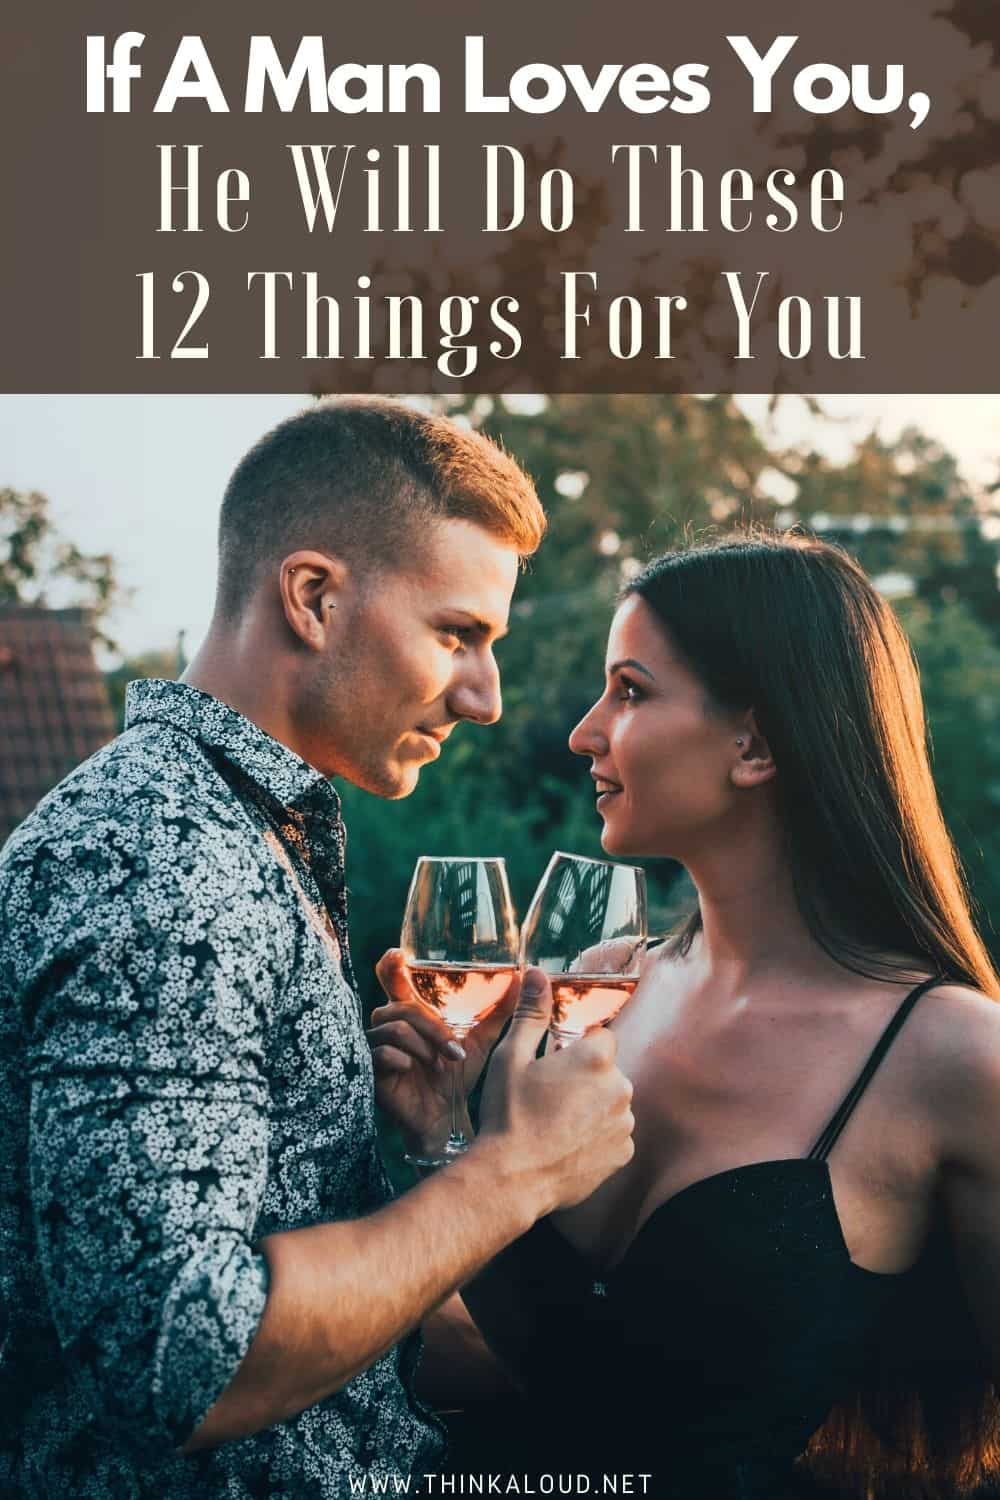 If A Man Loves You, He Will Do These 12 Things For You